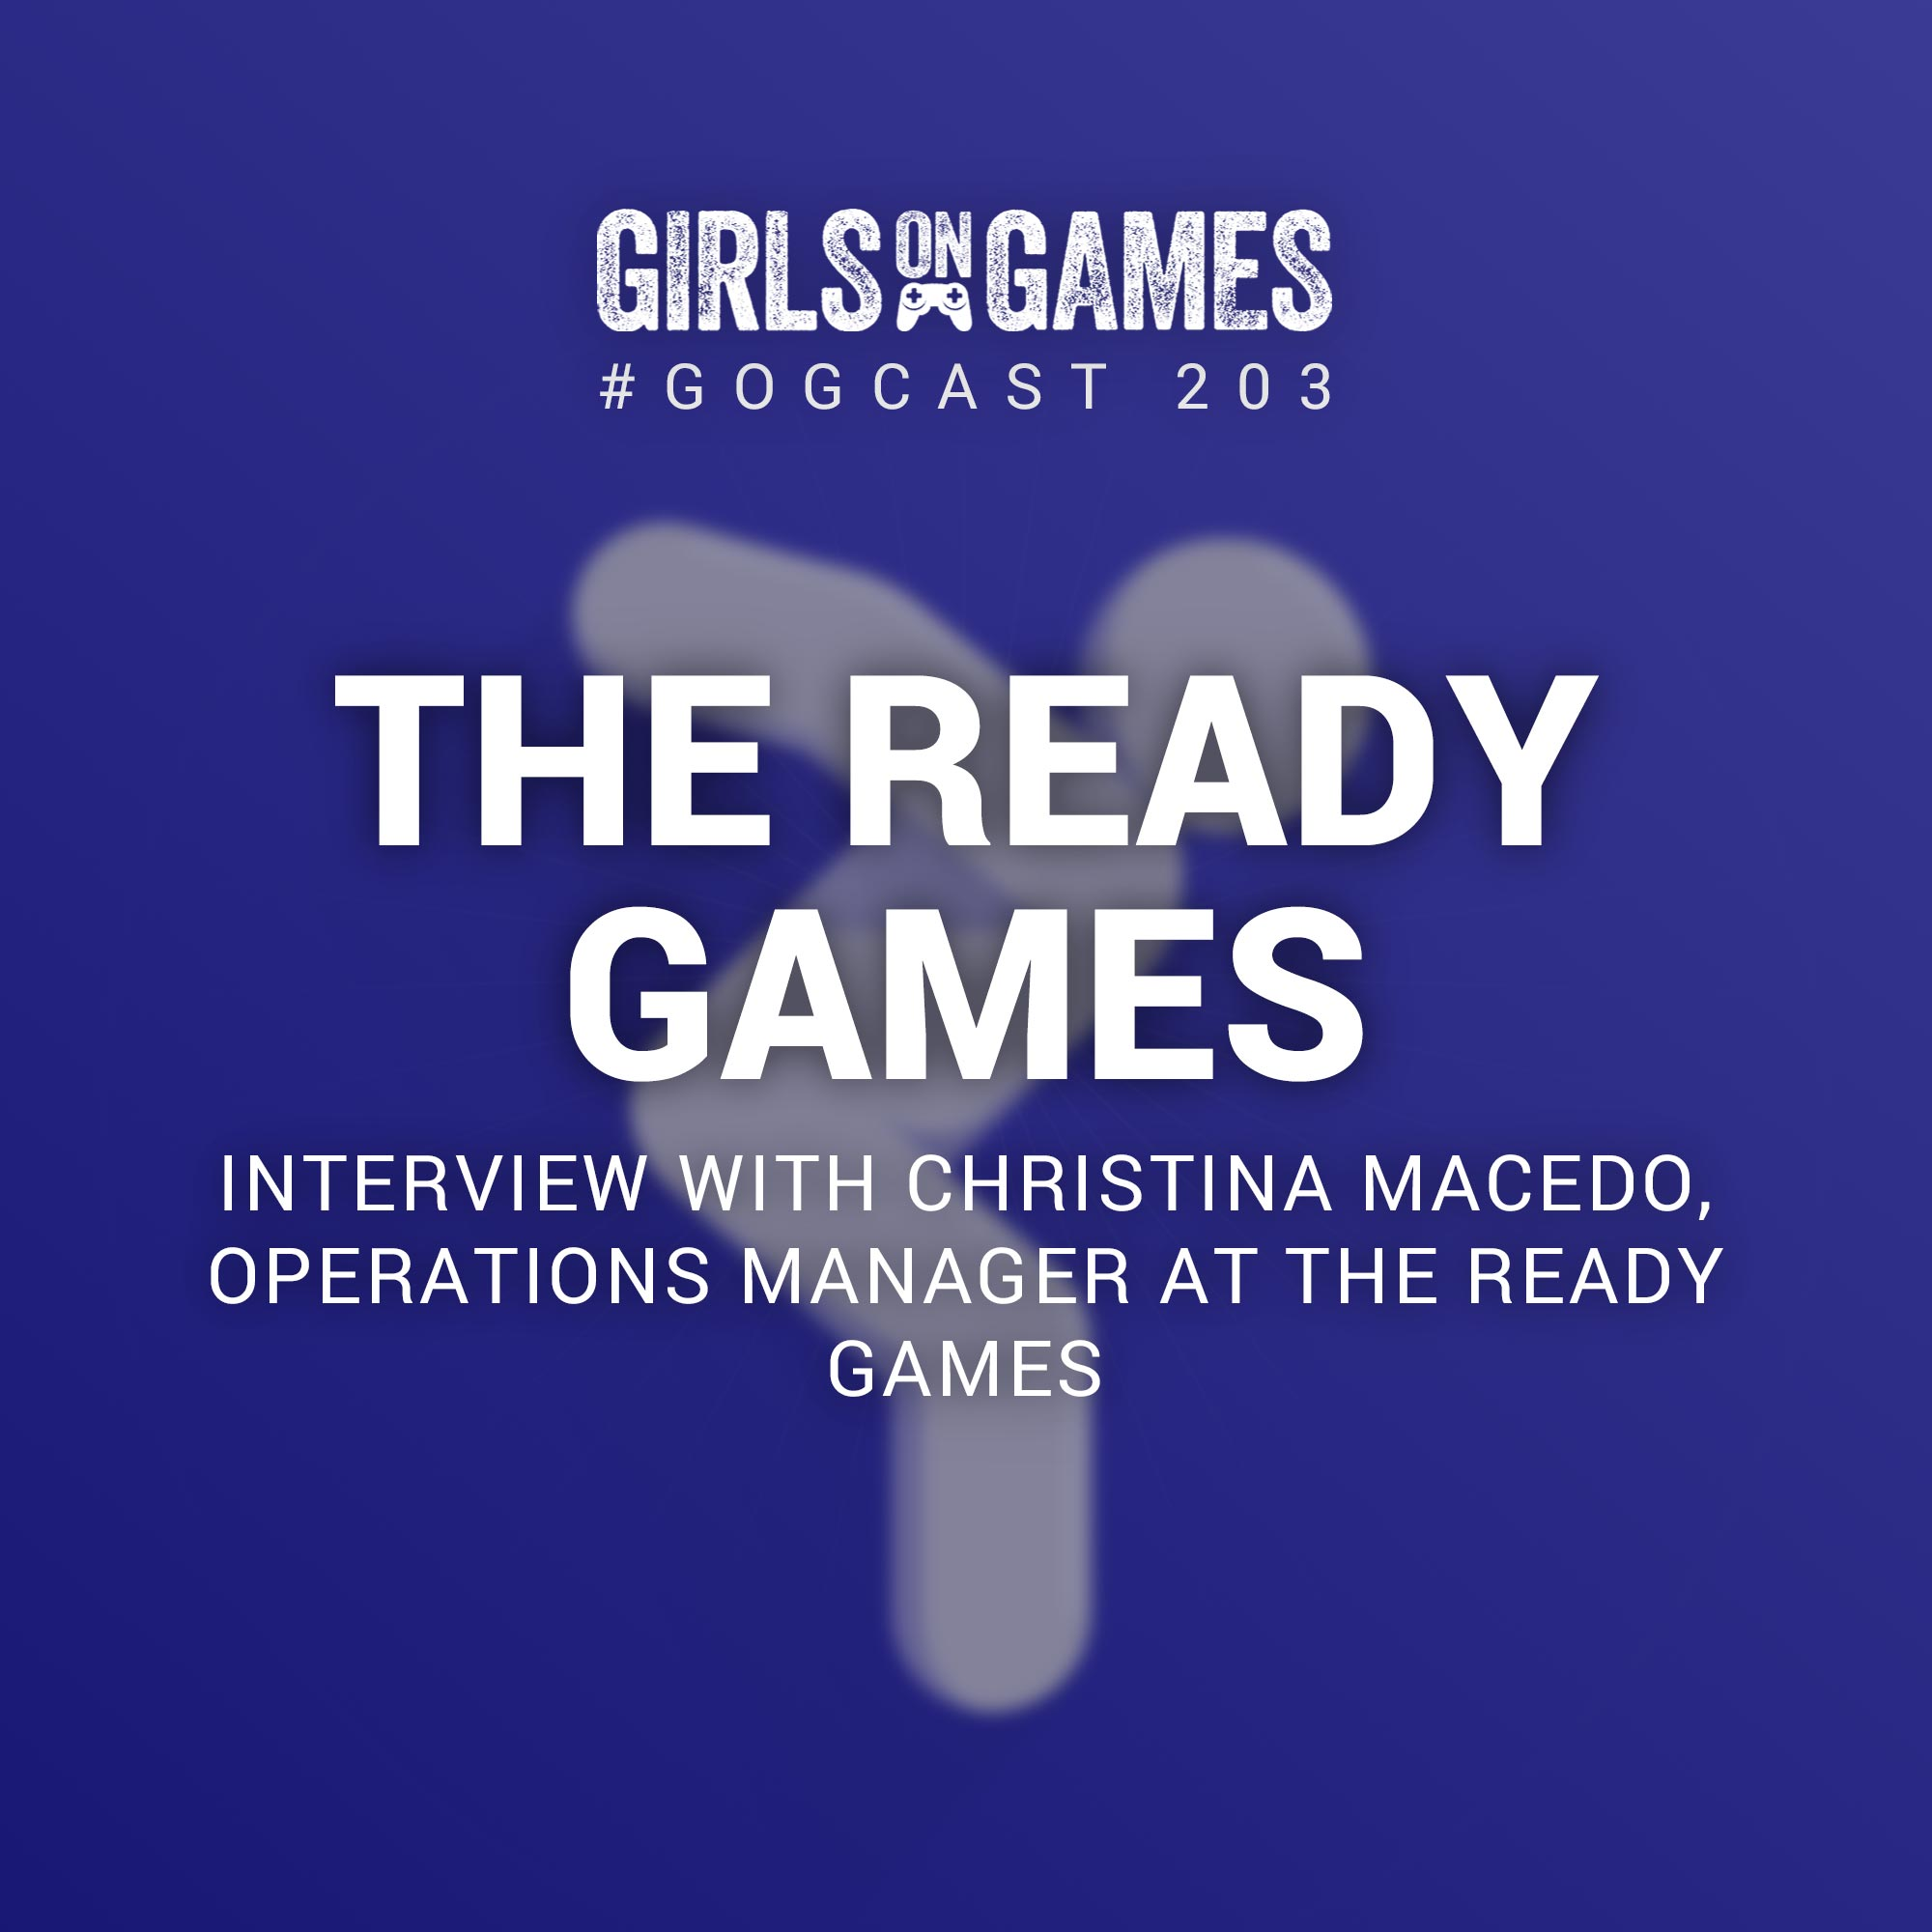 The Ready Games: Interview with Christina Macedo - GoGCast 203